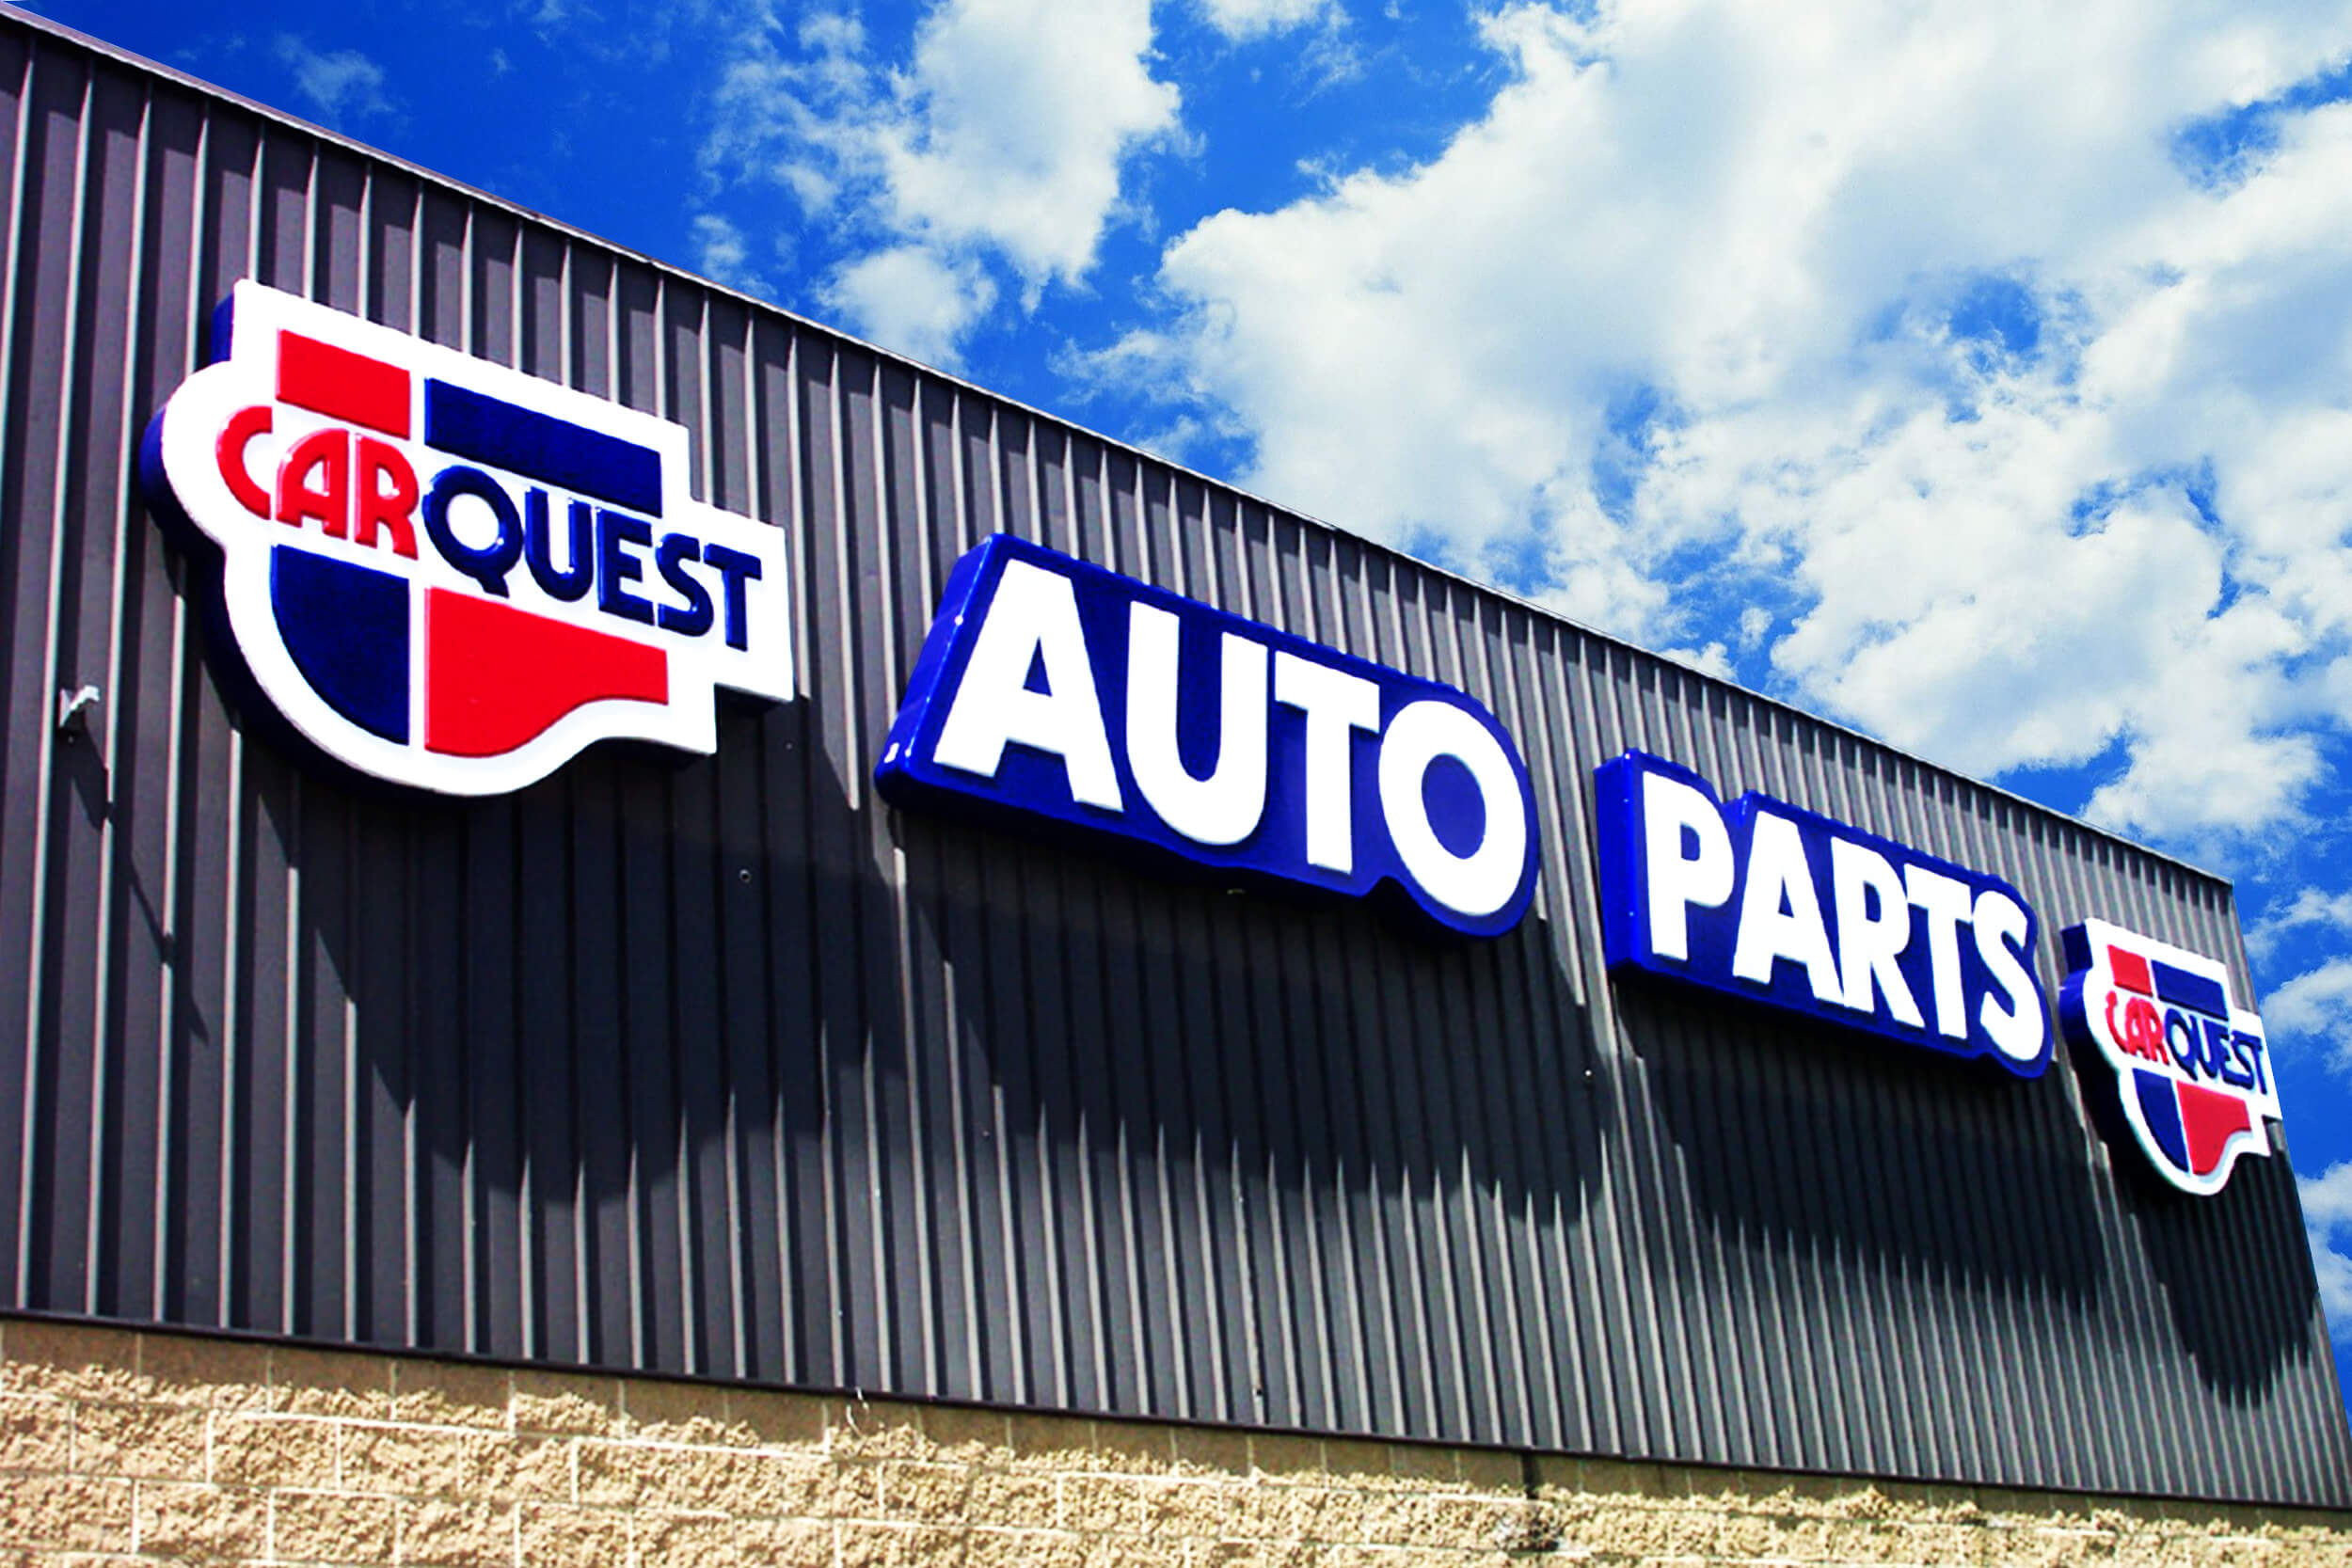 This large cloud/contour CarQuest signage spanned across the width of this store helps this minimalistic building style stand out.